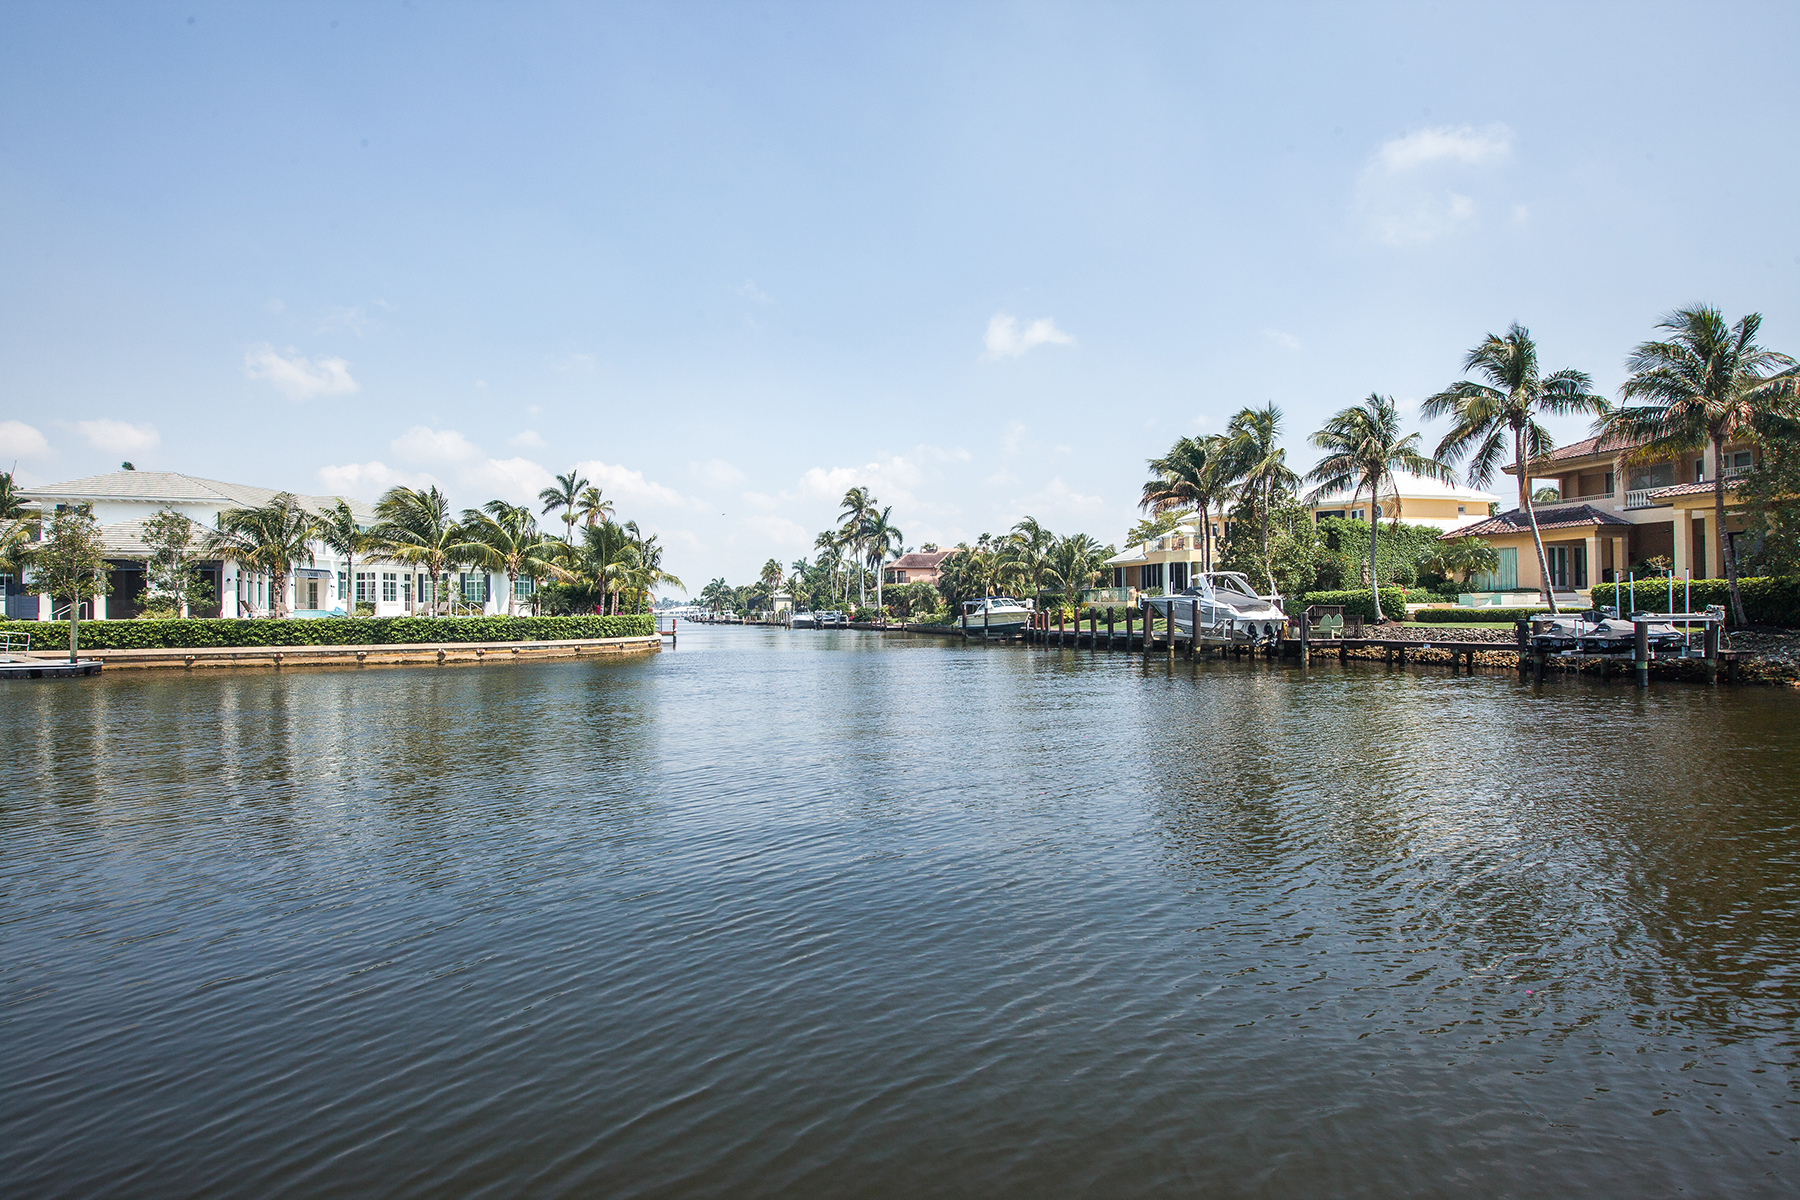 Additional photo for property listing at AQUALANE SHORES 2027  5th St  S,  Naples, Florida 34102 United States